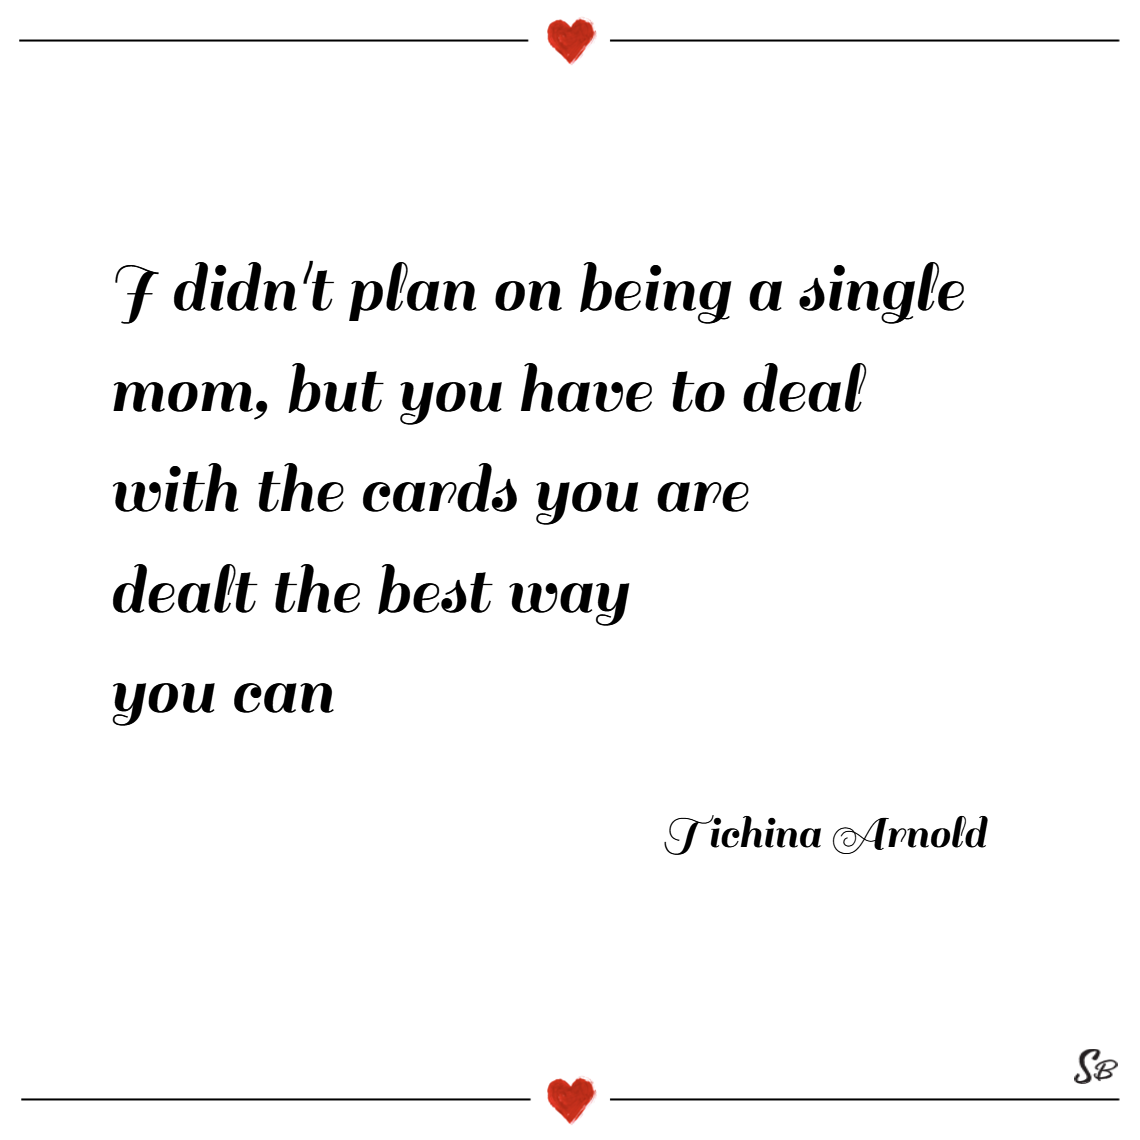 I didn't plan on being a single mom, but you have to deal with the cards you are dealt the best way you can. – tichina arnold